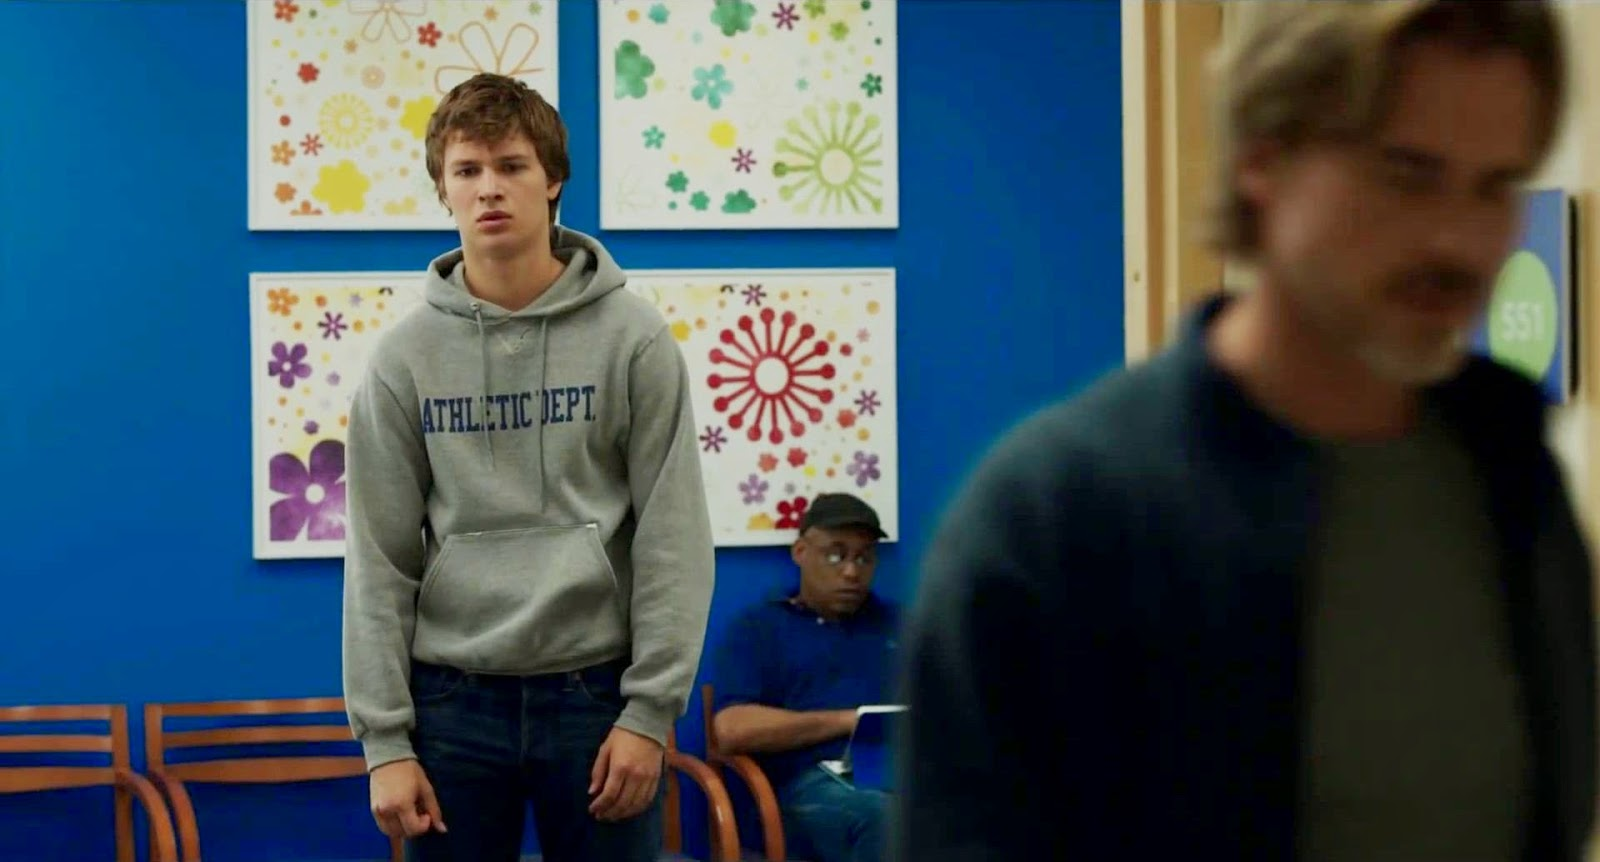 psychology movie review Psychology 101: intro to psychology has been evaluated and recommended for 3 semester hours and may be transferred to over 2,000 colleges and.